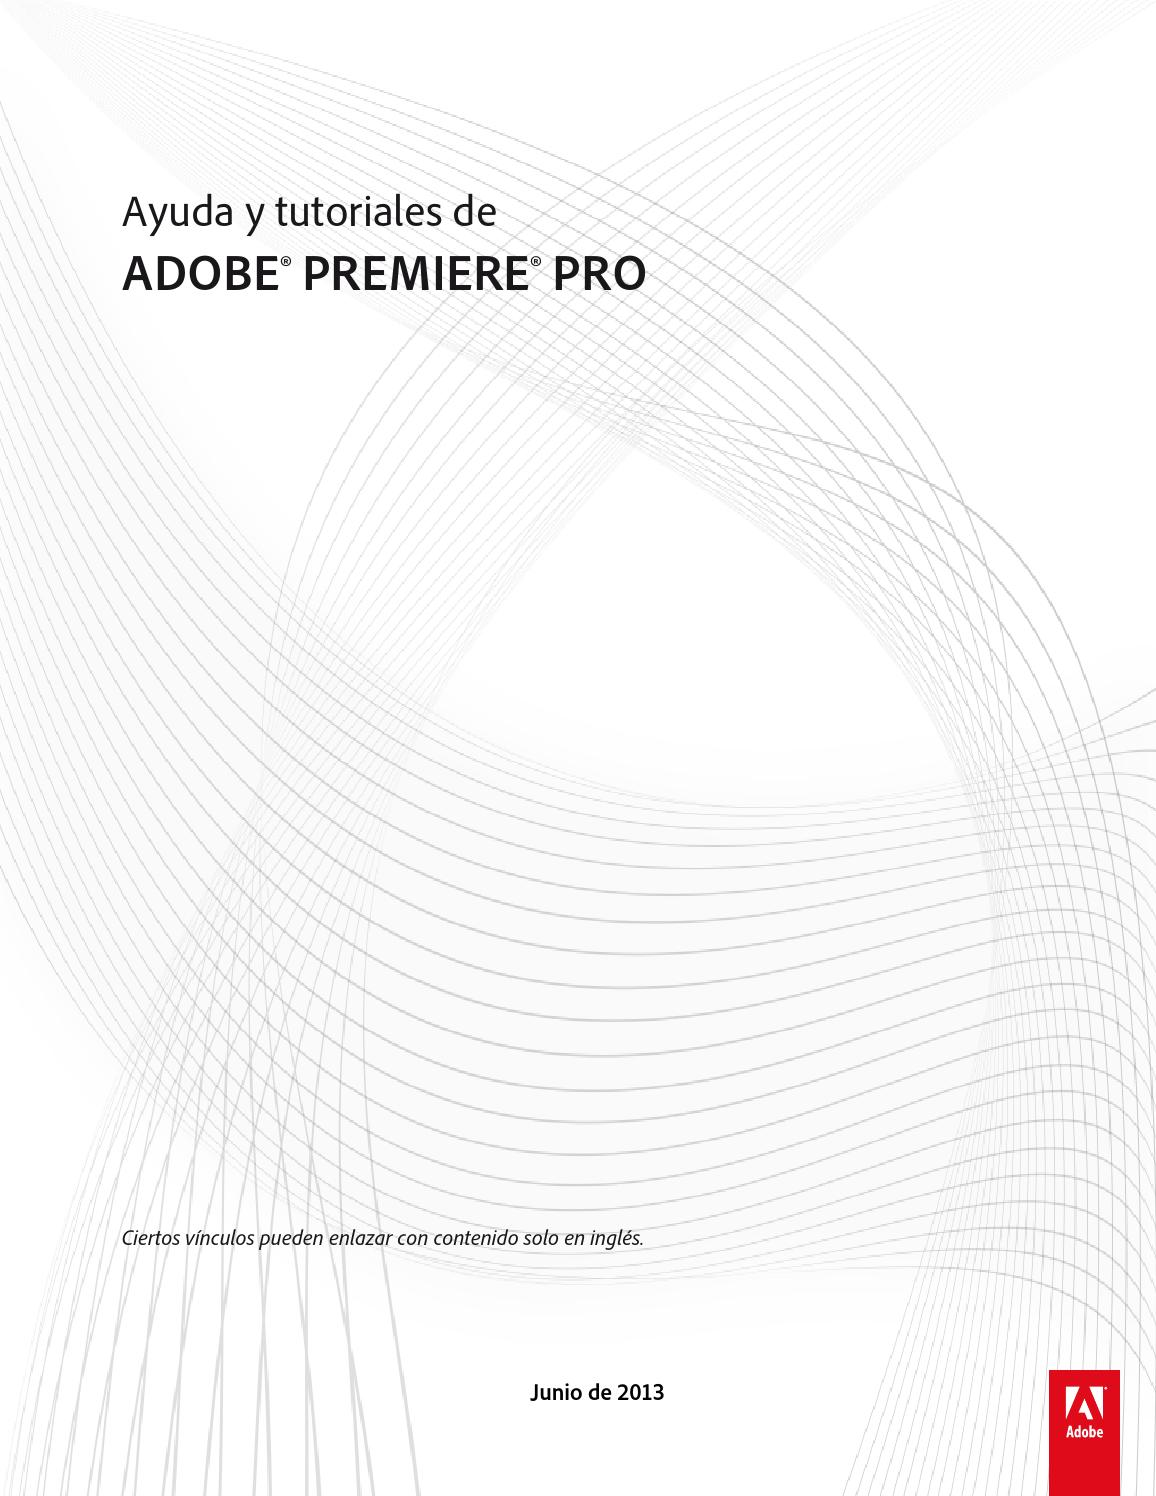 Premiere pro reference by Alan Roberto - issuu